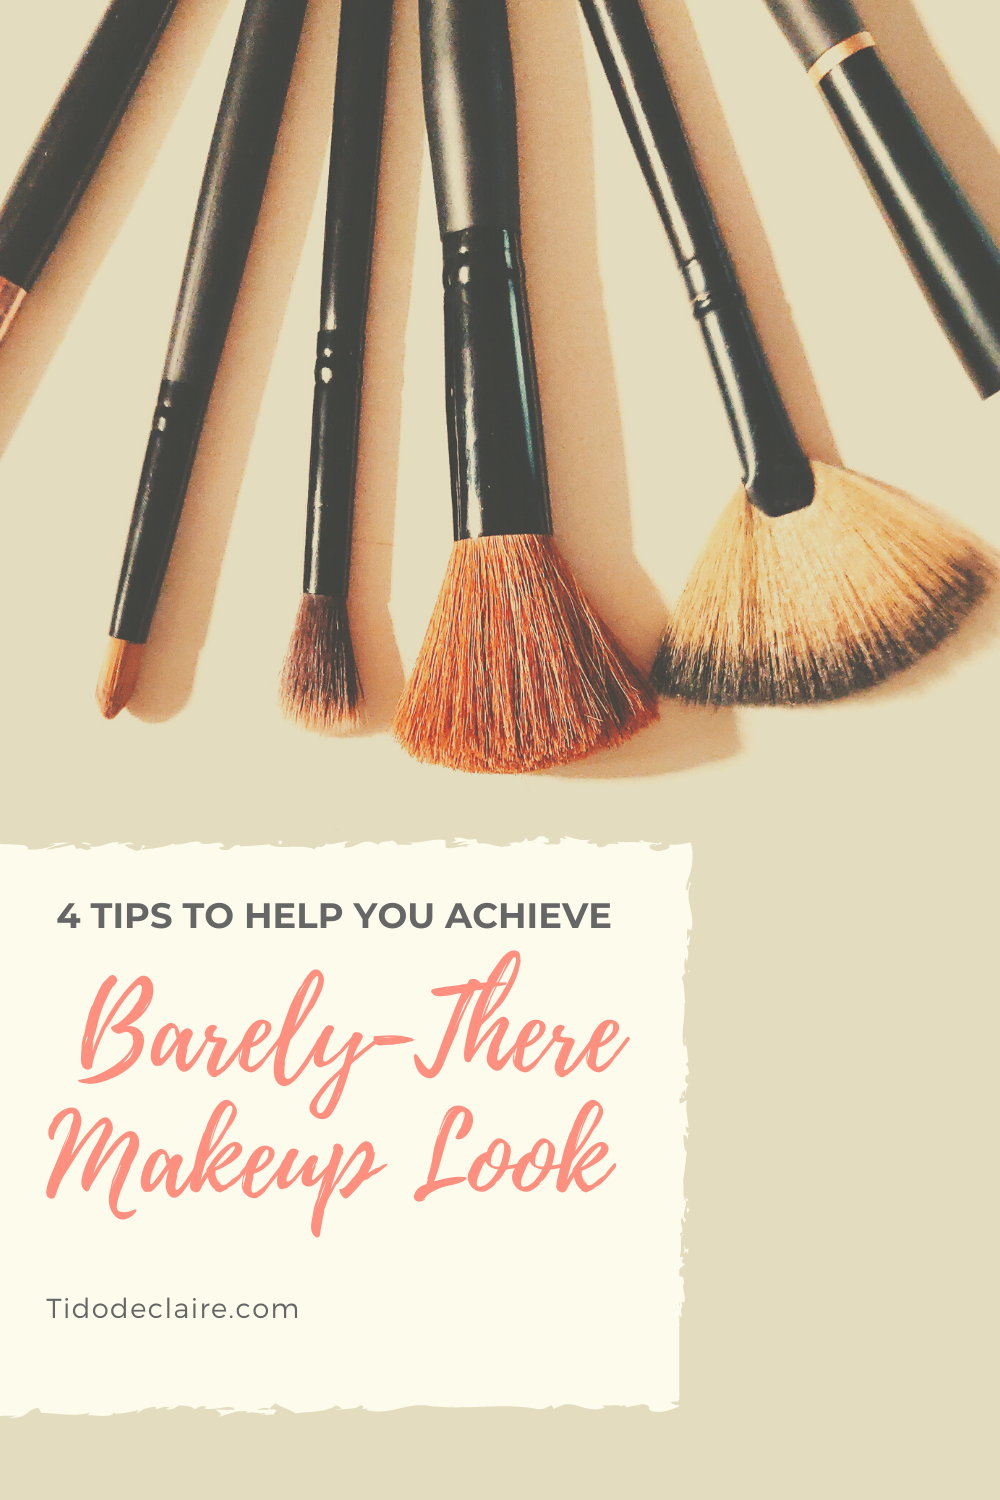 4 Tips to Help You Achieve a Barely-There Makeup Look